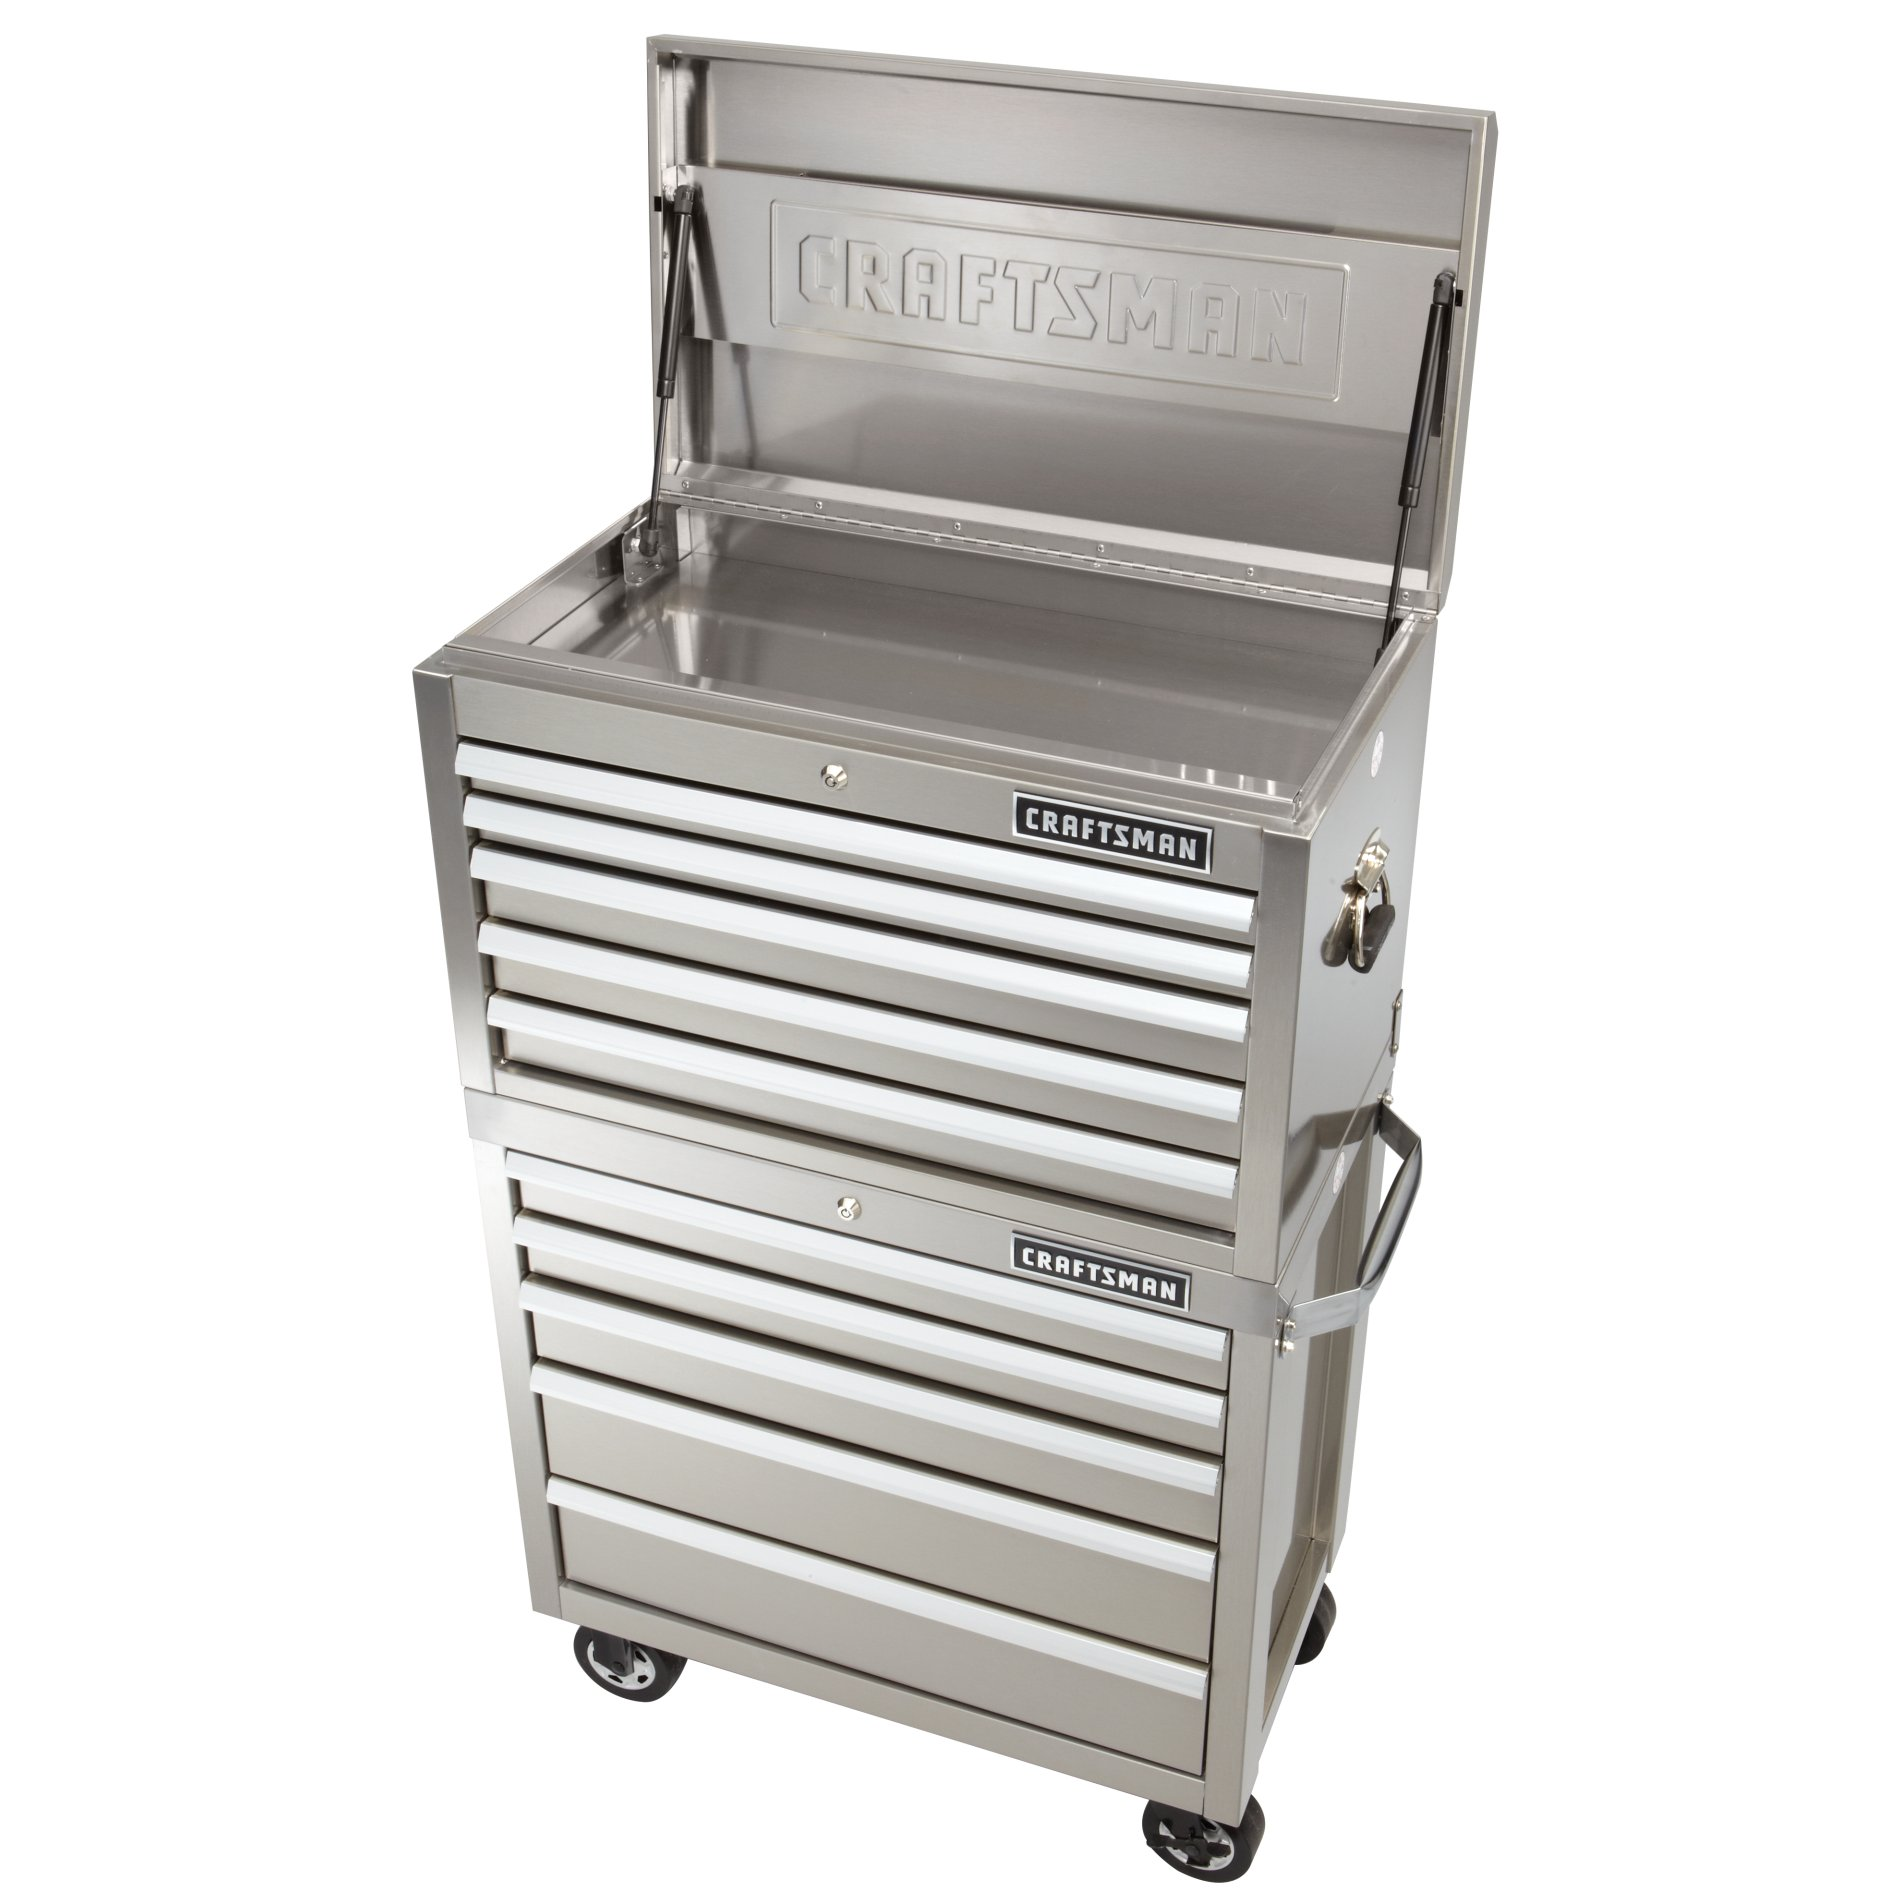 Craftsman 32-Inch 5-Drawer Premium Heavy-Duty Top Chest - Stainless Steel